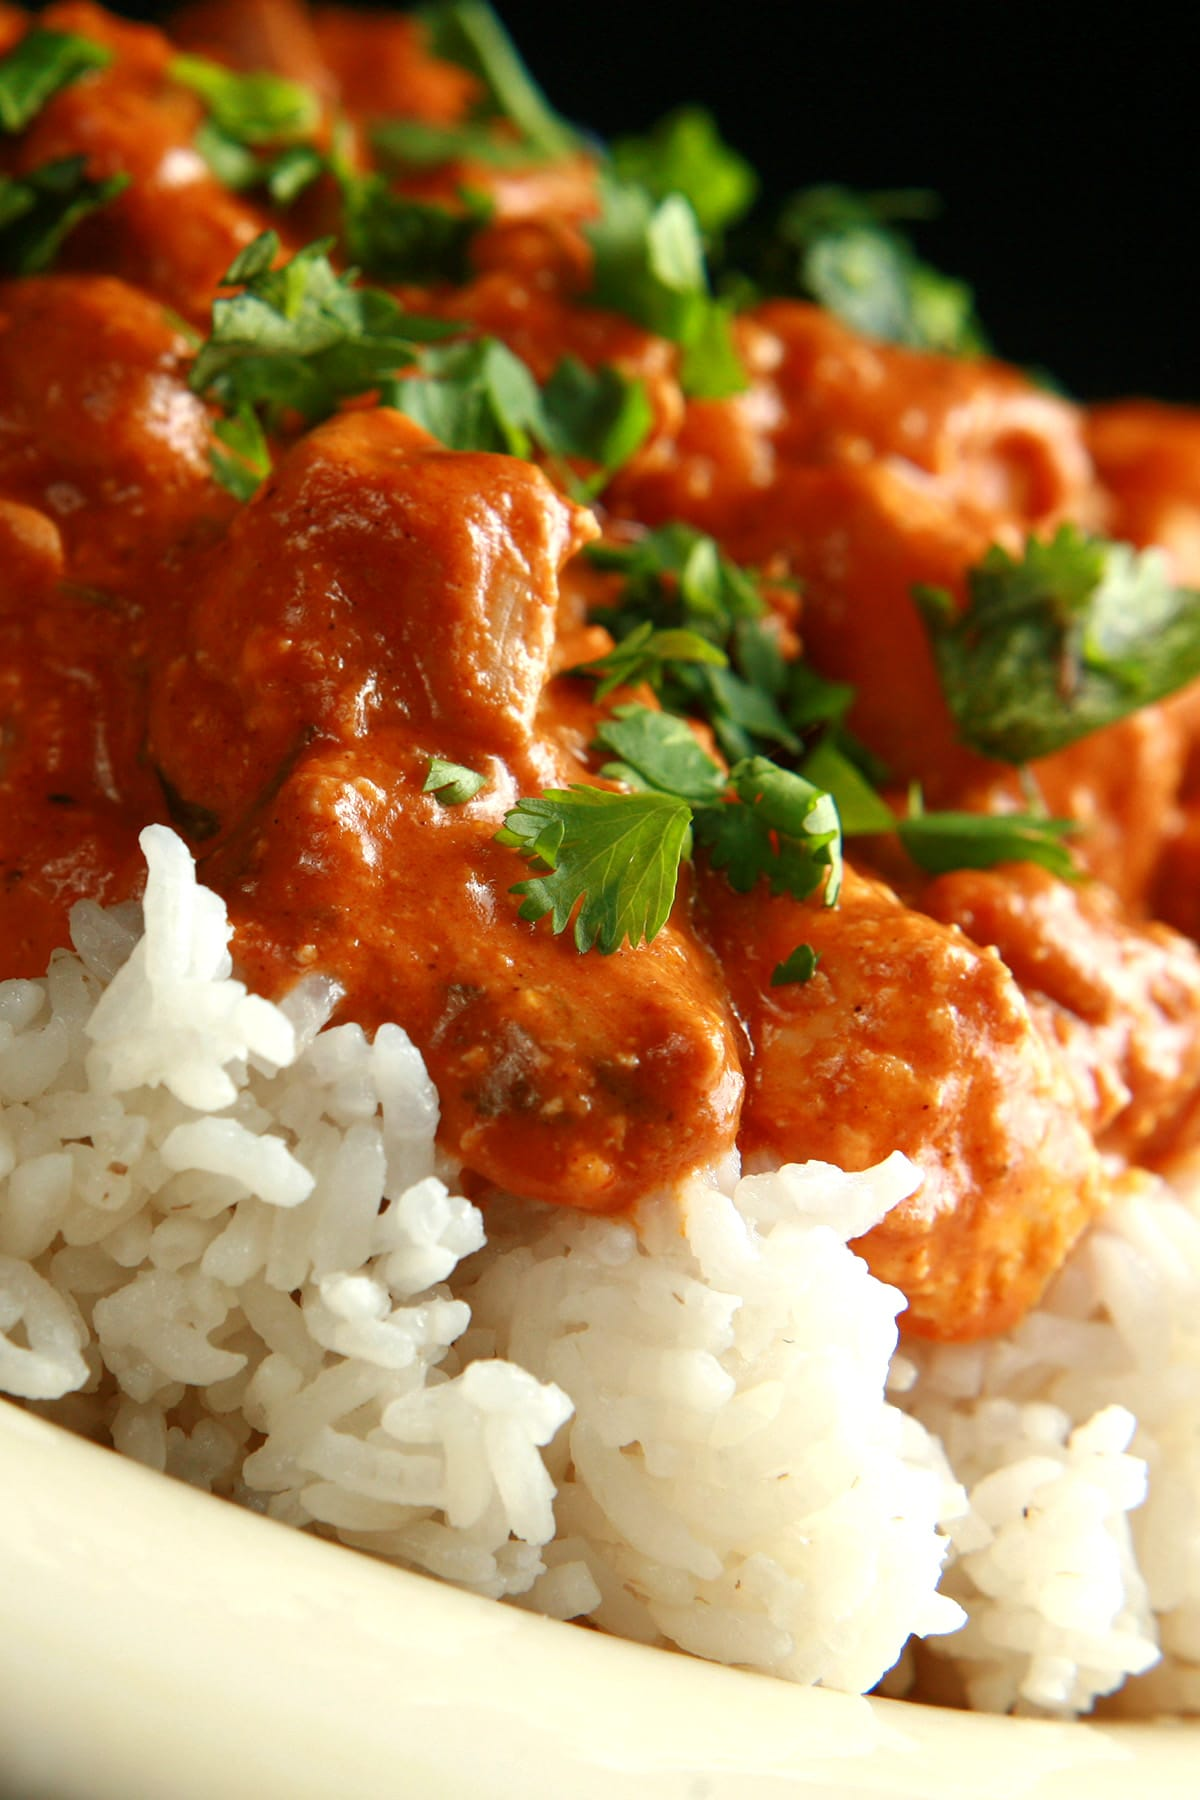 A close up view of Butter Chicken - Chicken in a  creamy tomato sauce, served over rice.